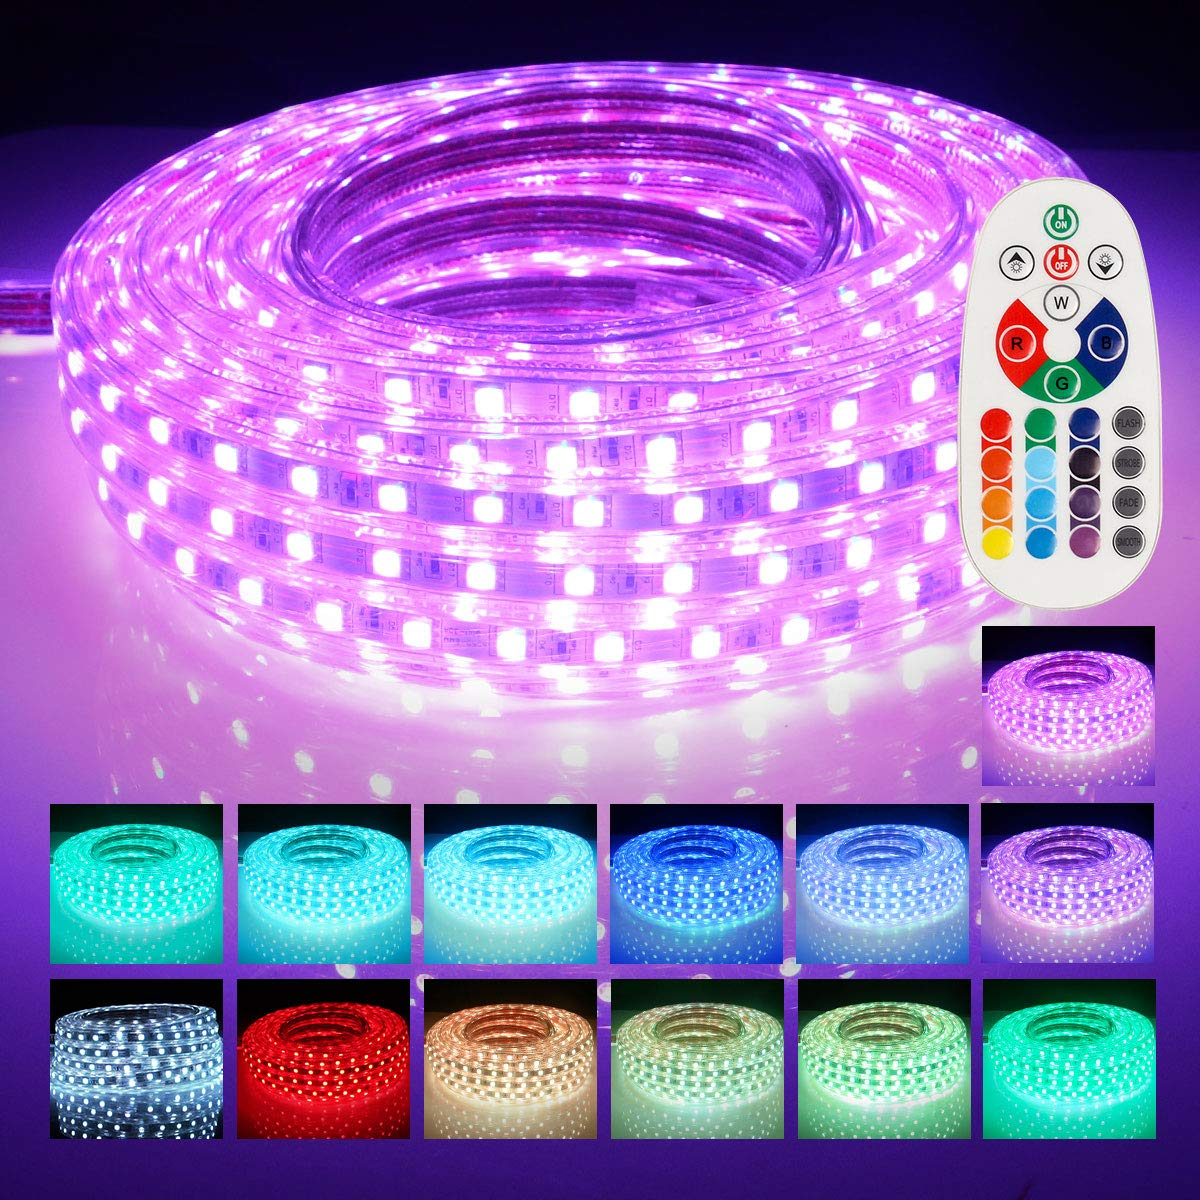 LED Strip Lights, Remote Controller RGB Waterproof Rope Light, Flexible Multi-color Change LED Strip Rope Wire Light for Party Holiday Home Decoration 5050 SMD 60 LEDs/M 110V 50 FT